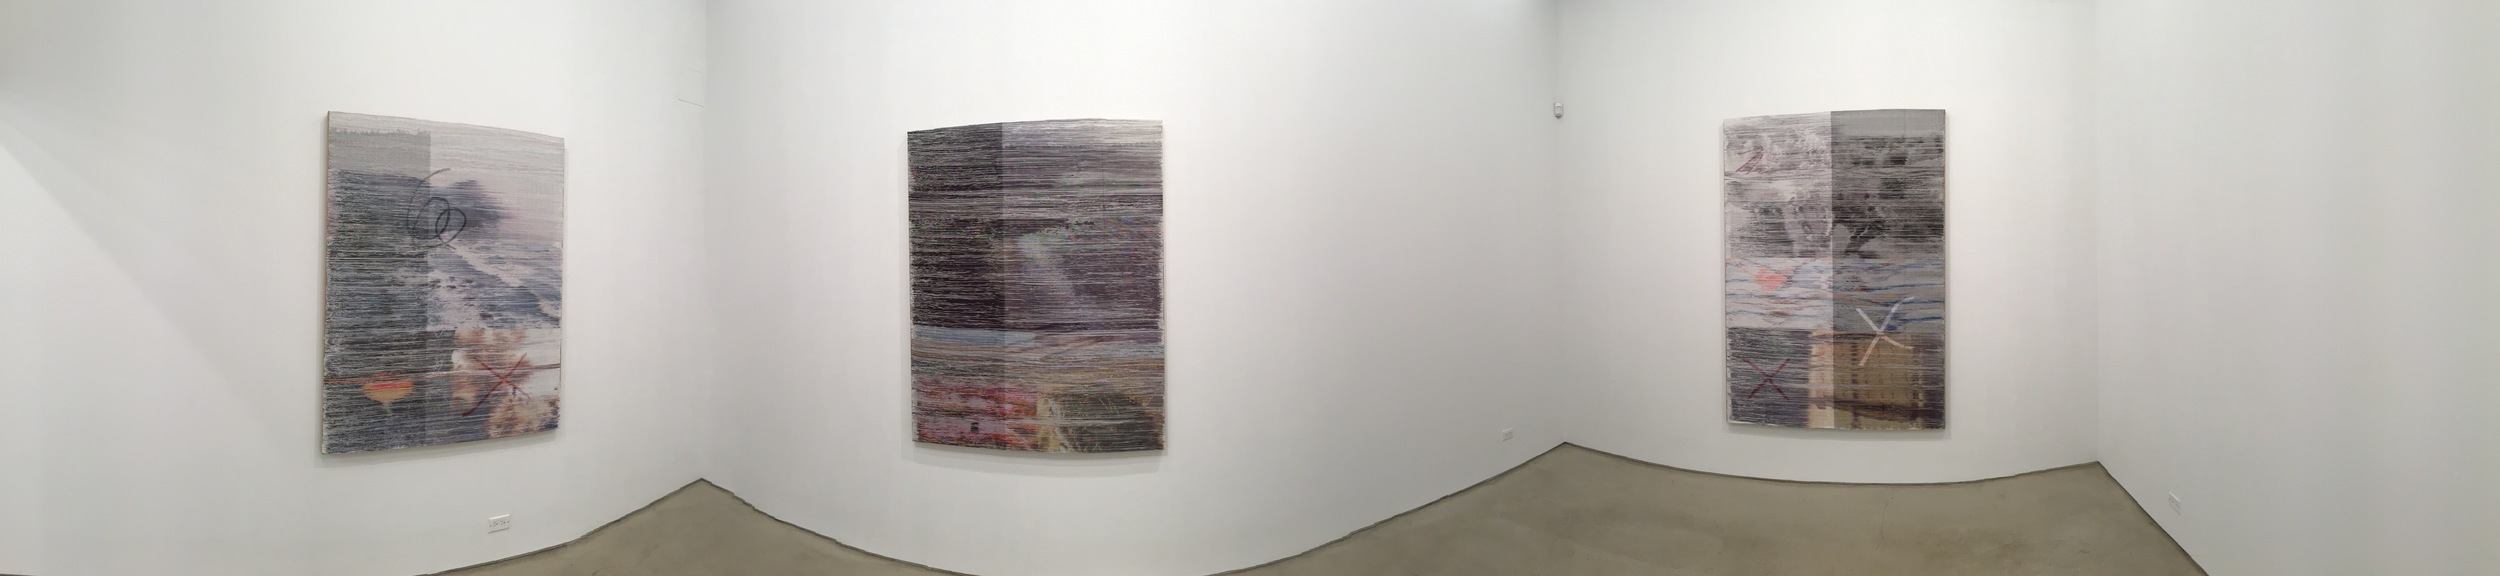 Exhibition Image,  Margo Wolowiec, Corrections and Exposures,  Lisa Cooley, New York Photo Credit: Cincala Art Advisory